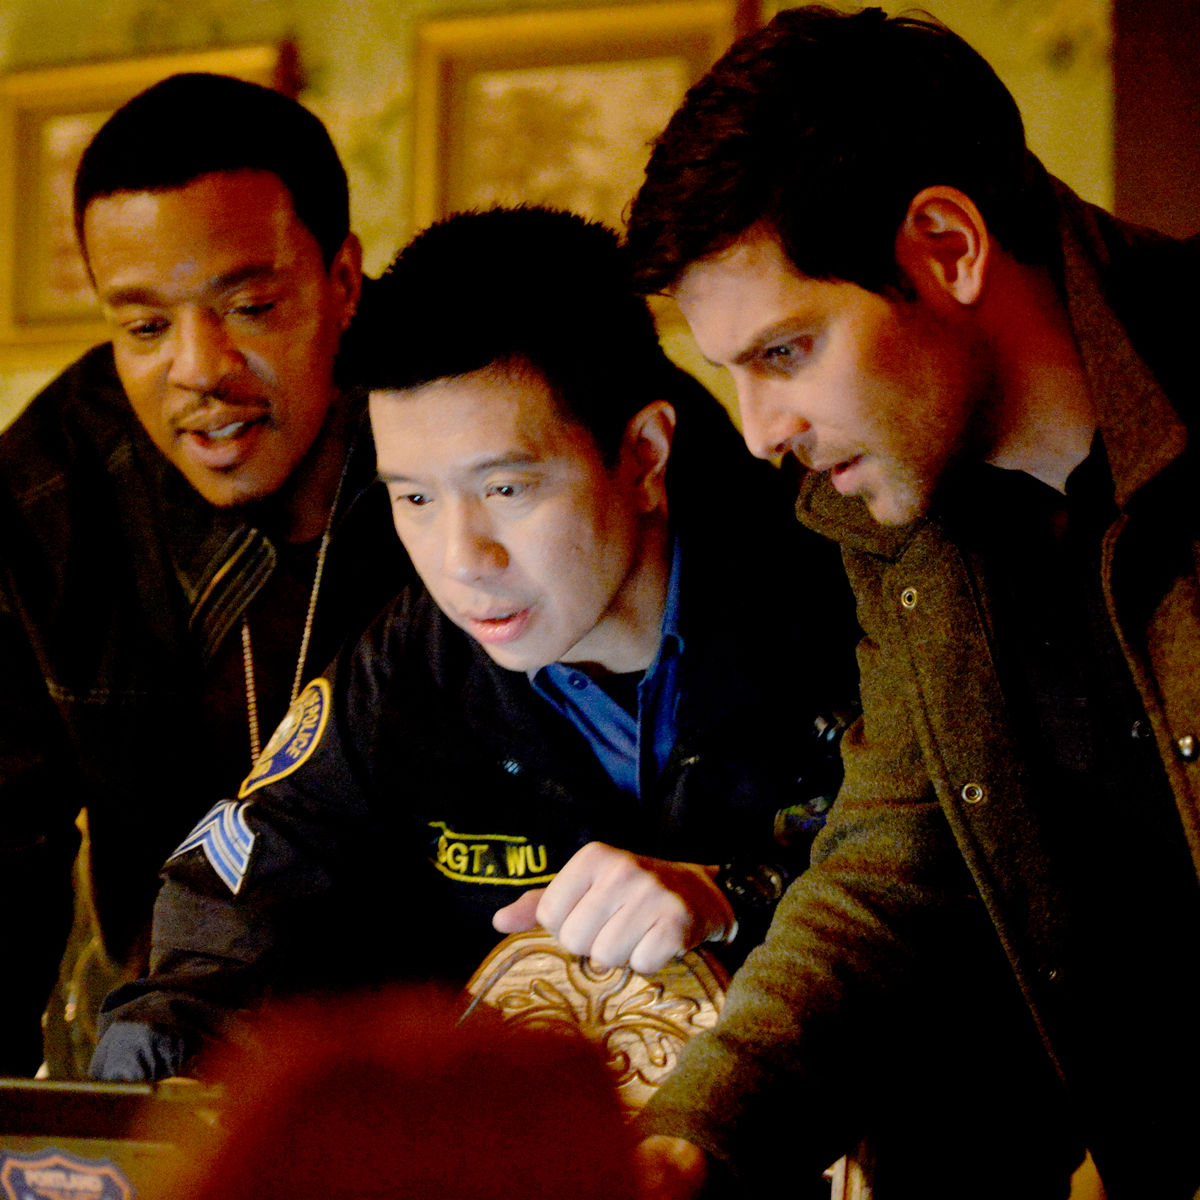 'Grimm' Spinoff in the Works With a Female Lead